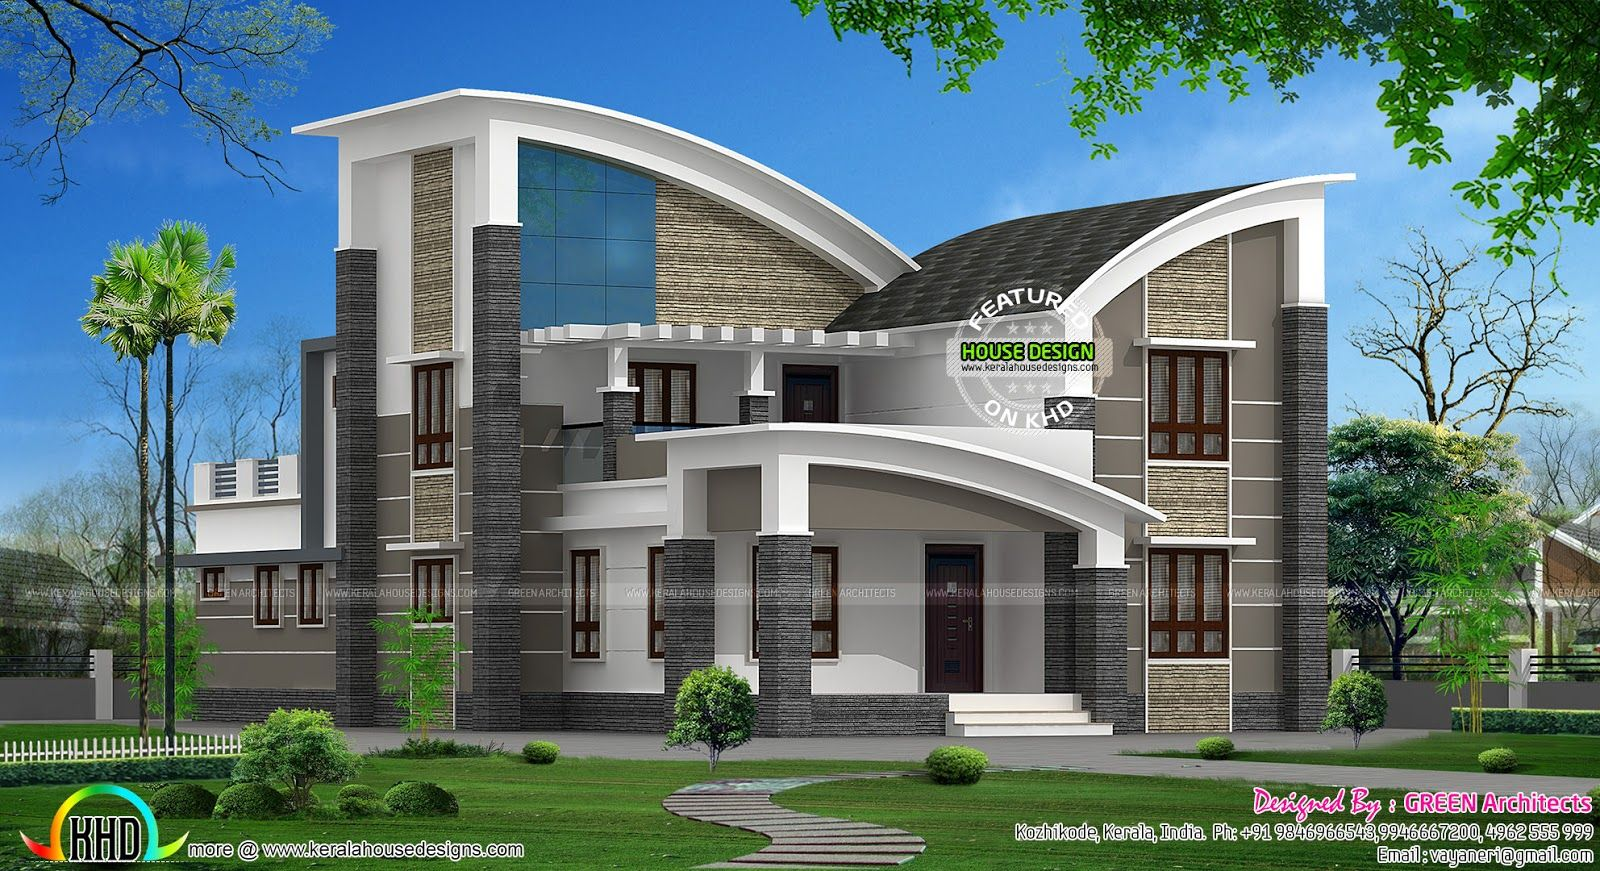 Modern Style Curved Roof Villa Home Inspiration Pinterest Villas Modern And House